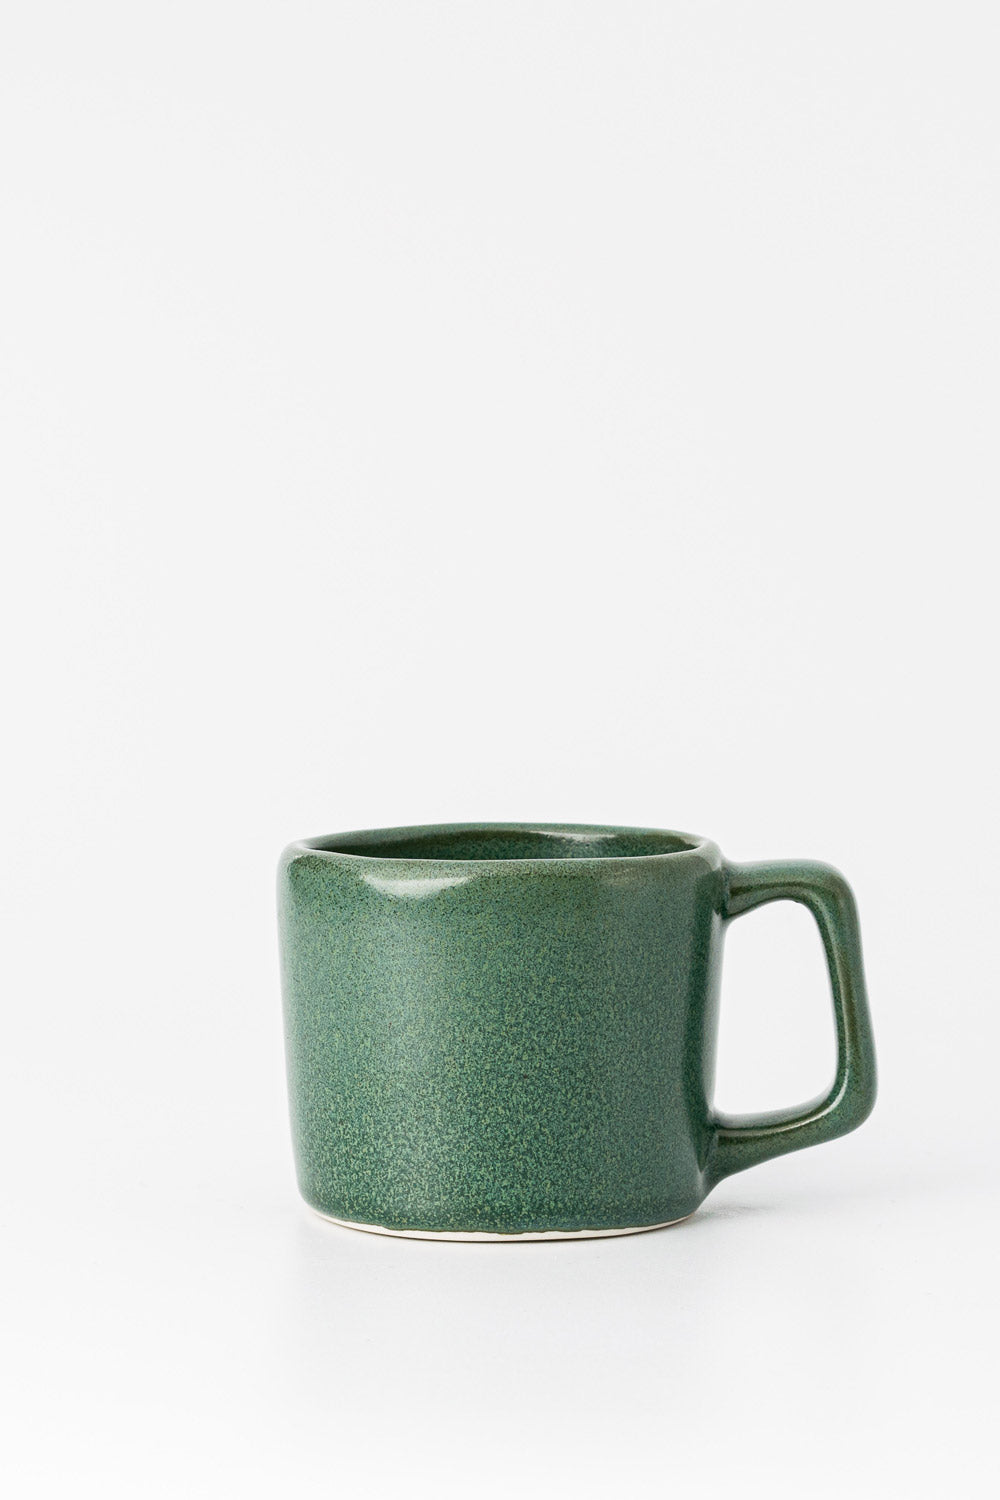 Haand Mug Small in Fern - Vert & Vogue